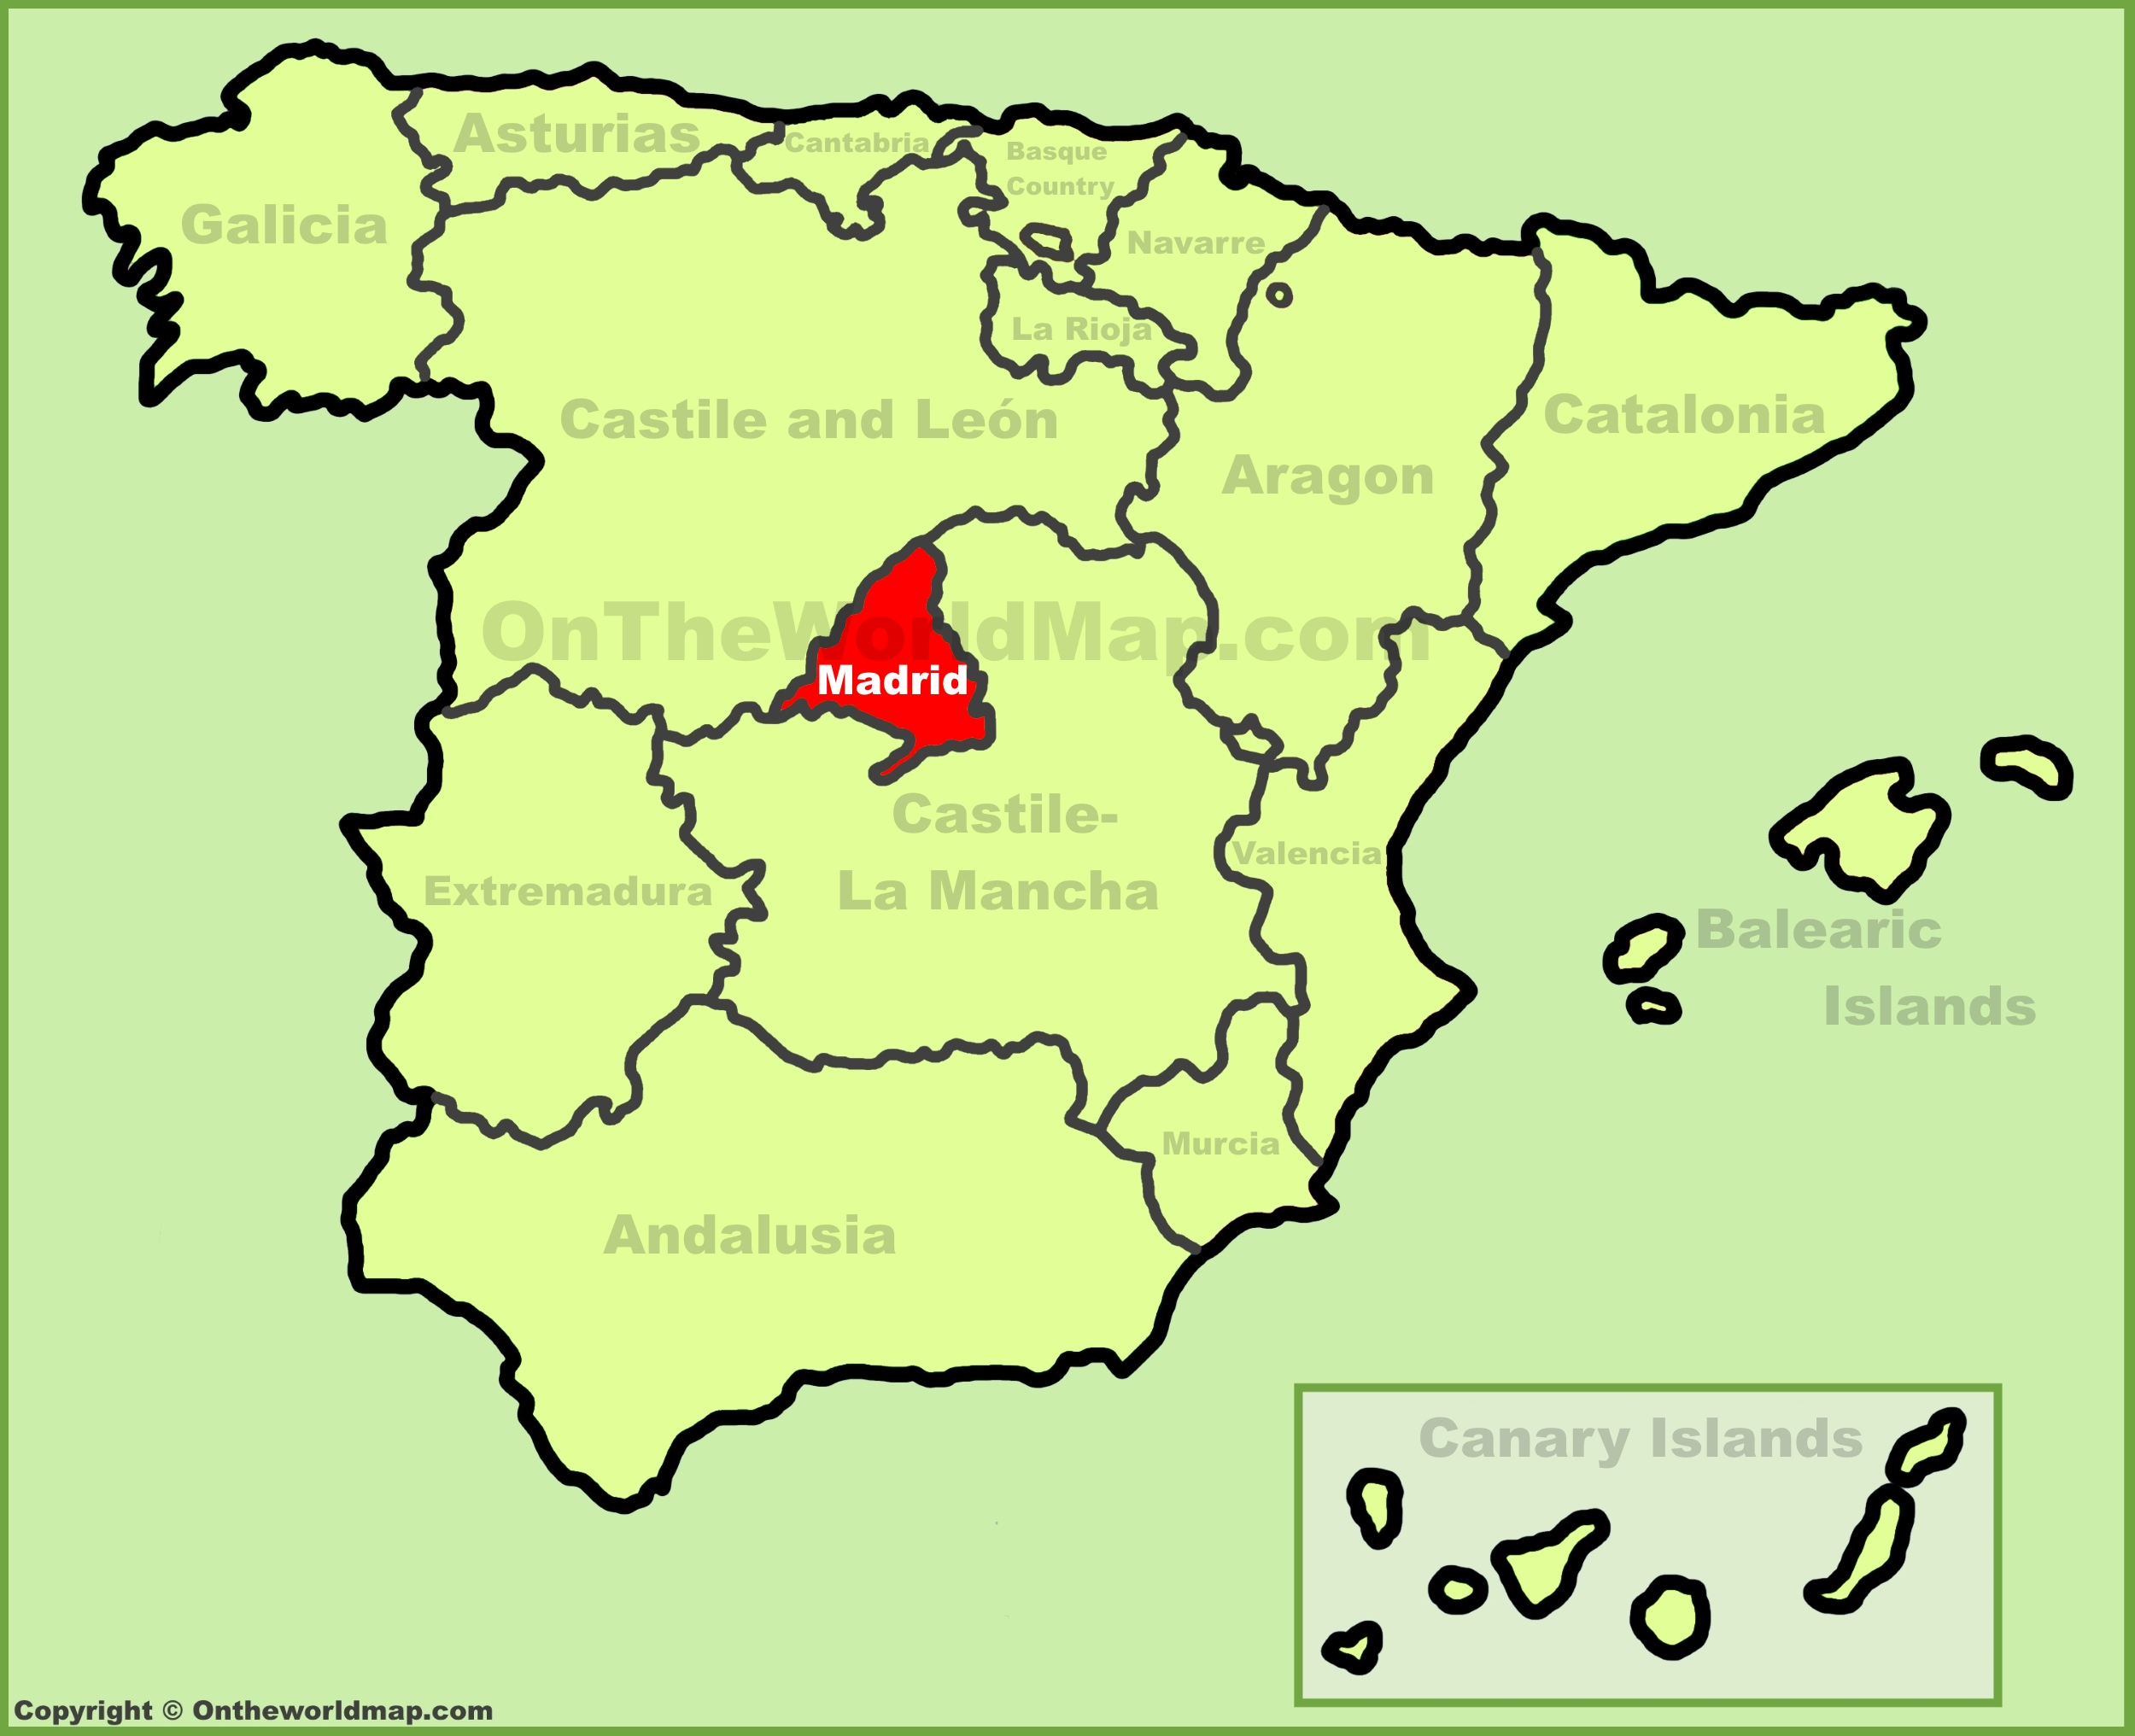 Community of Madrid location on the Spain map